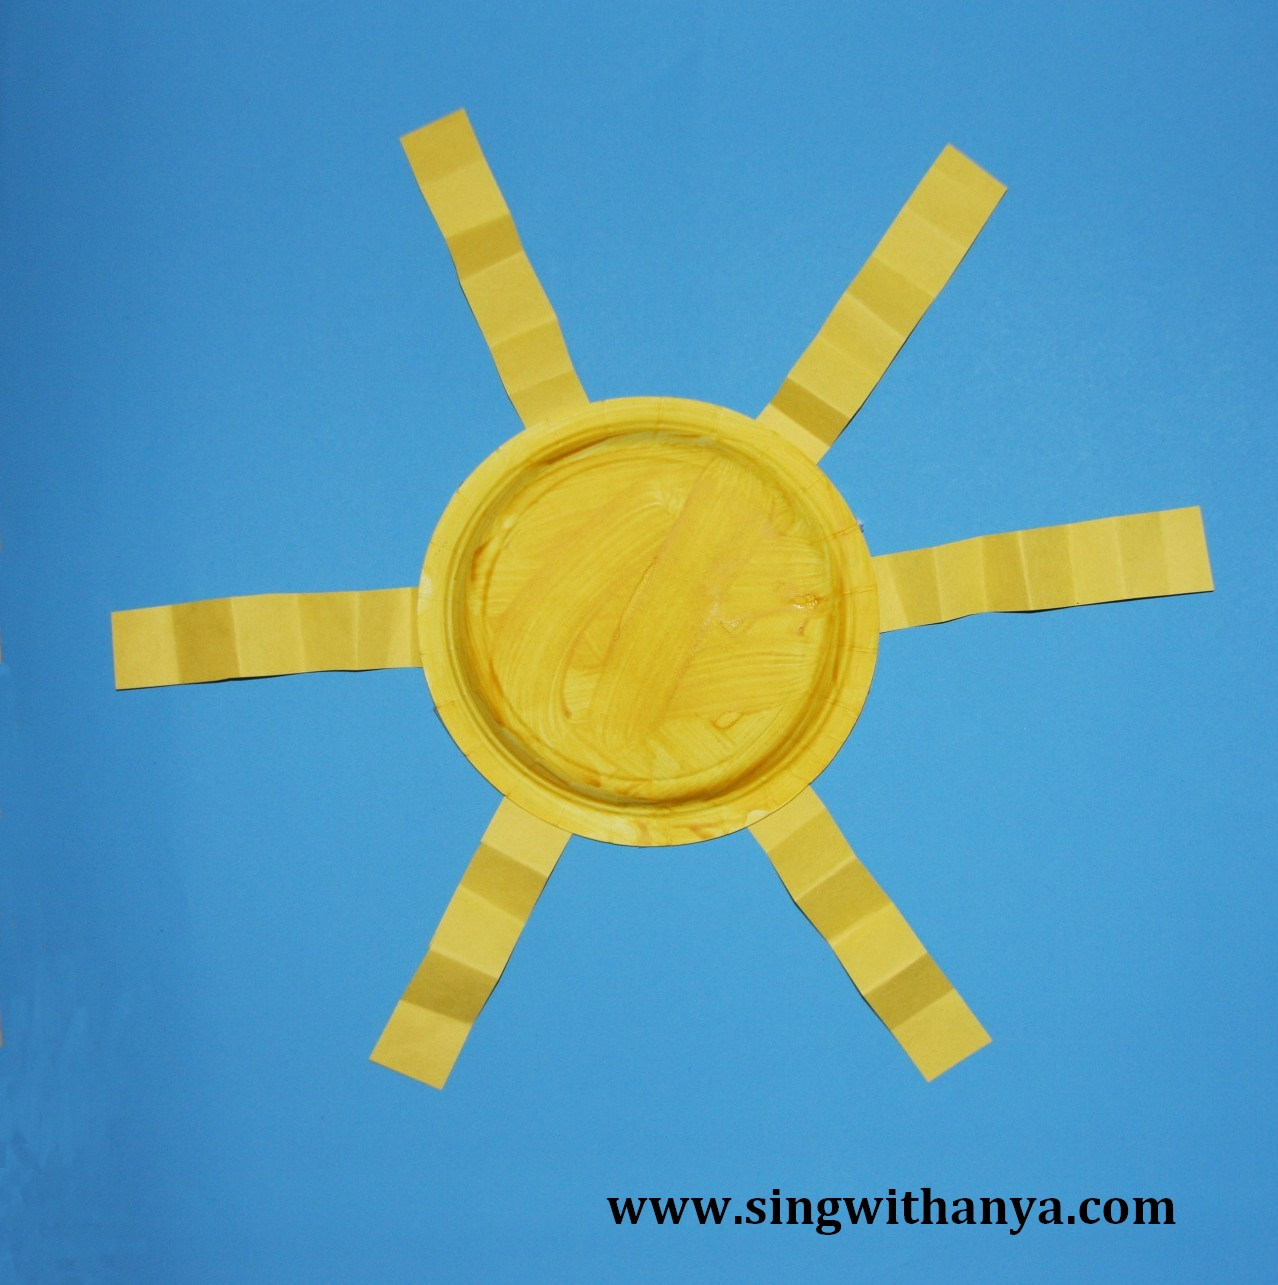 Sing And Learn With Anya Sun Easy Plate Project For Kids